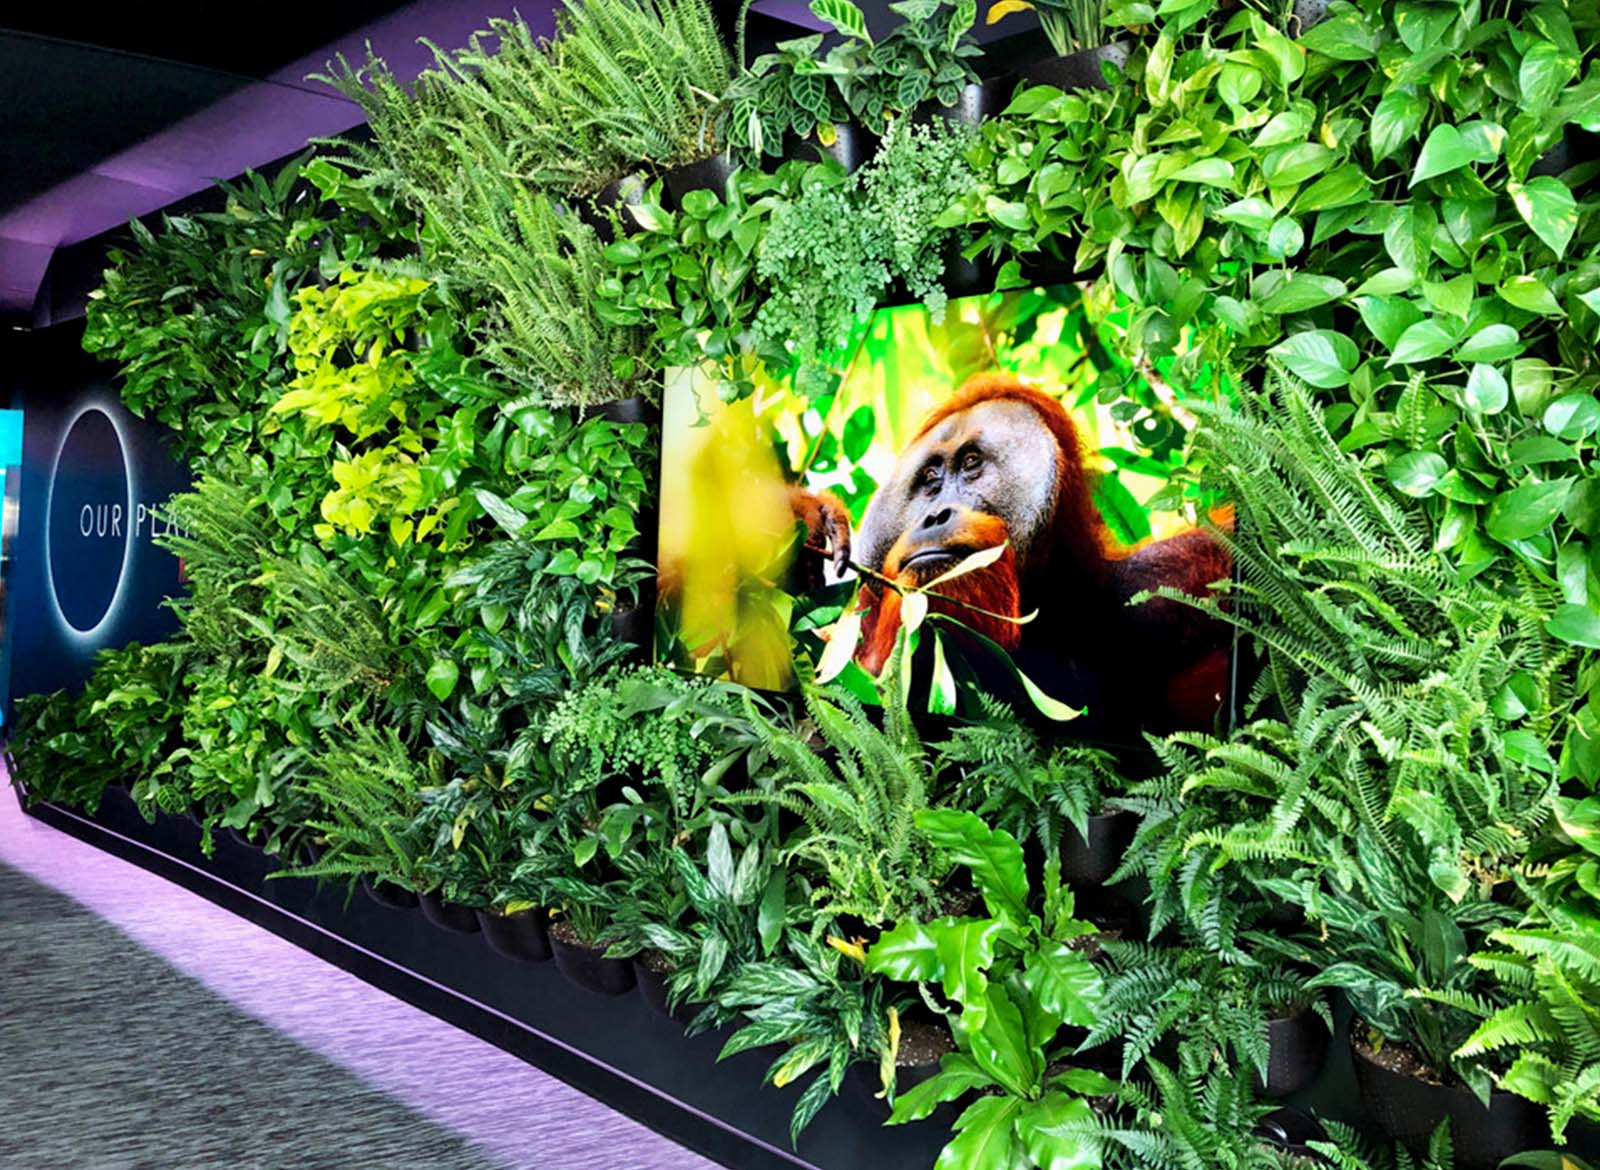 Wally Eco Vertical Garden by Greenery NYC at Our Planet Exhibition, Dolby SoHo